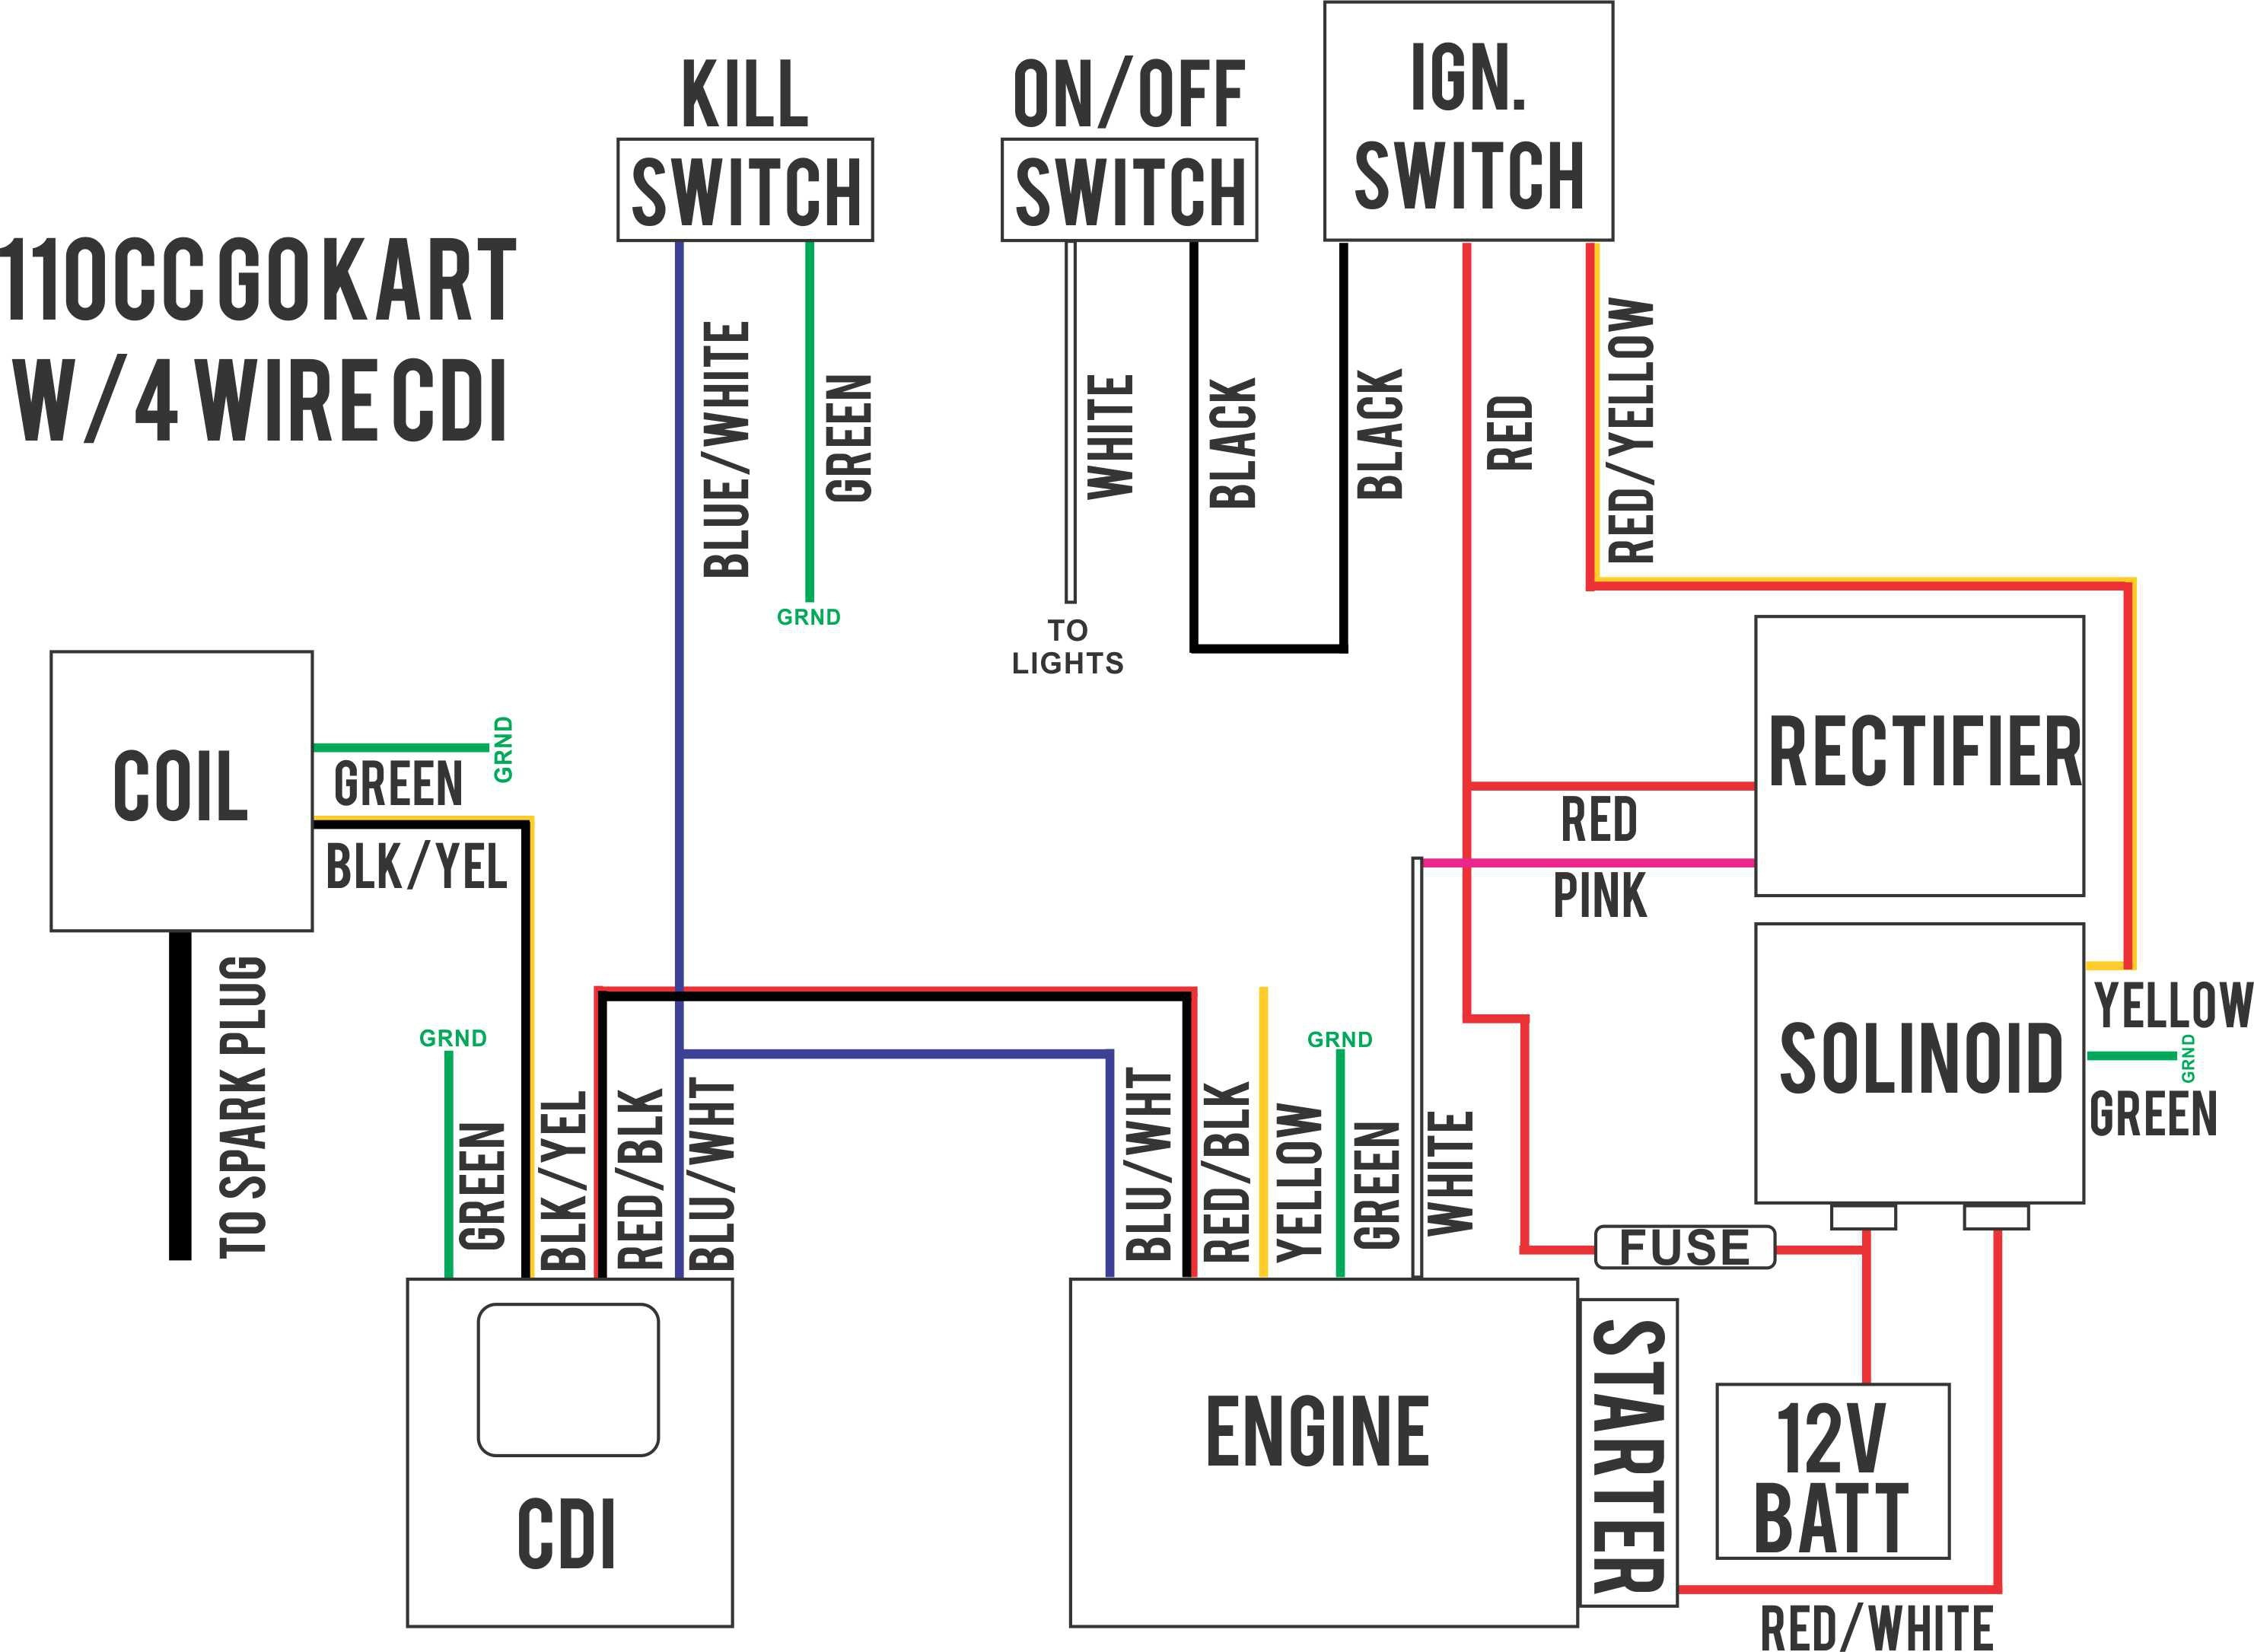 Harley Ignition Switch Wiring Diagram Collection | Wiring ... on